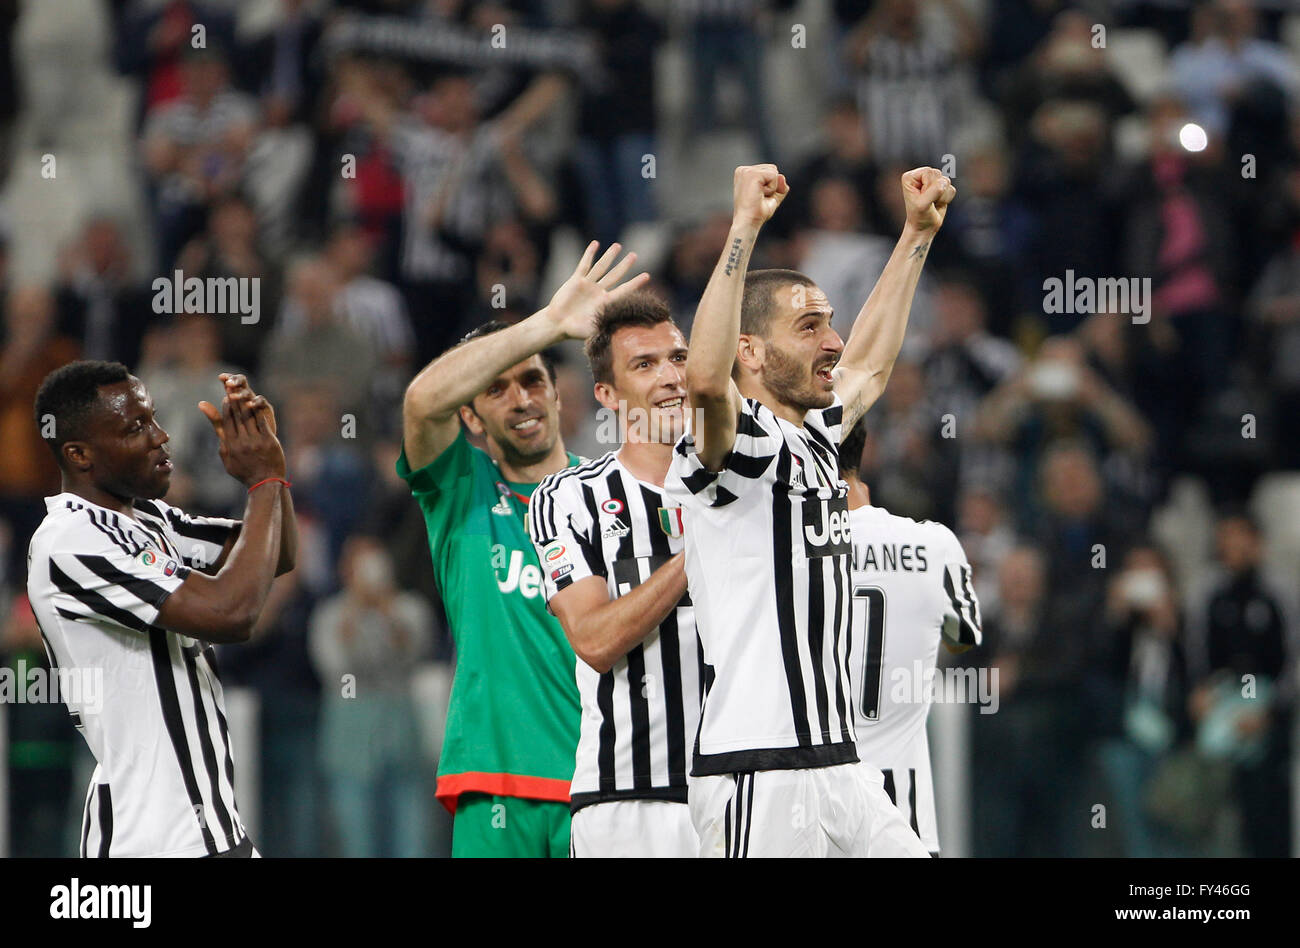 Turin Italy 20th Apr 2016 From left Juventus Kwadwo Asamoah